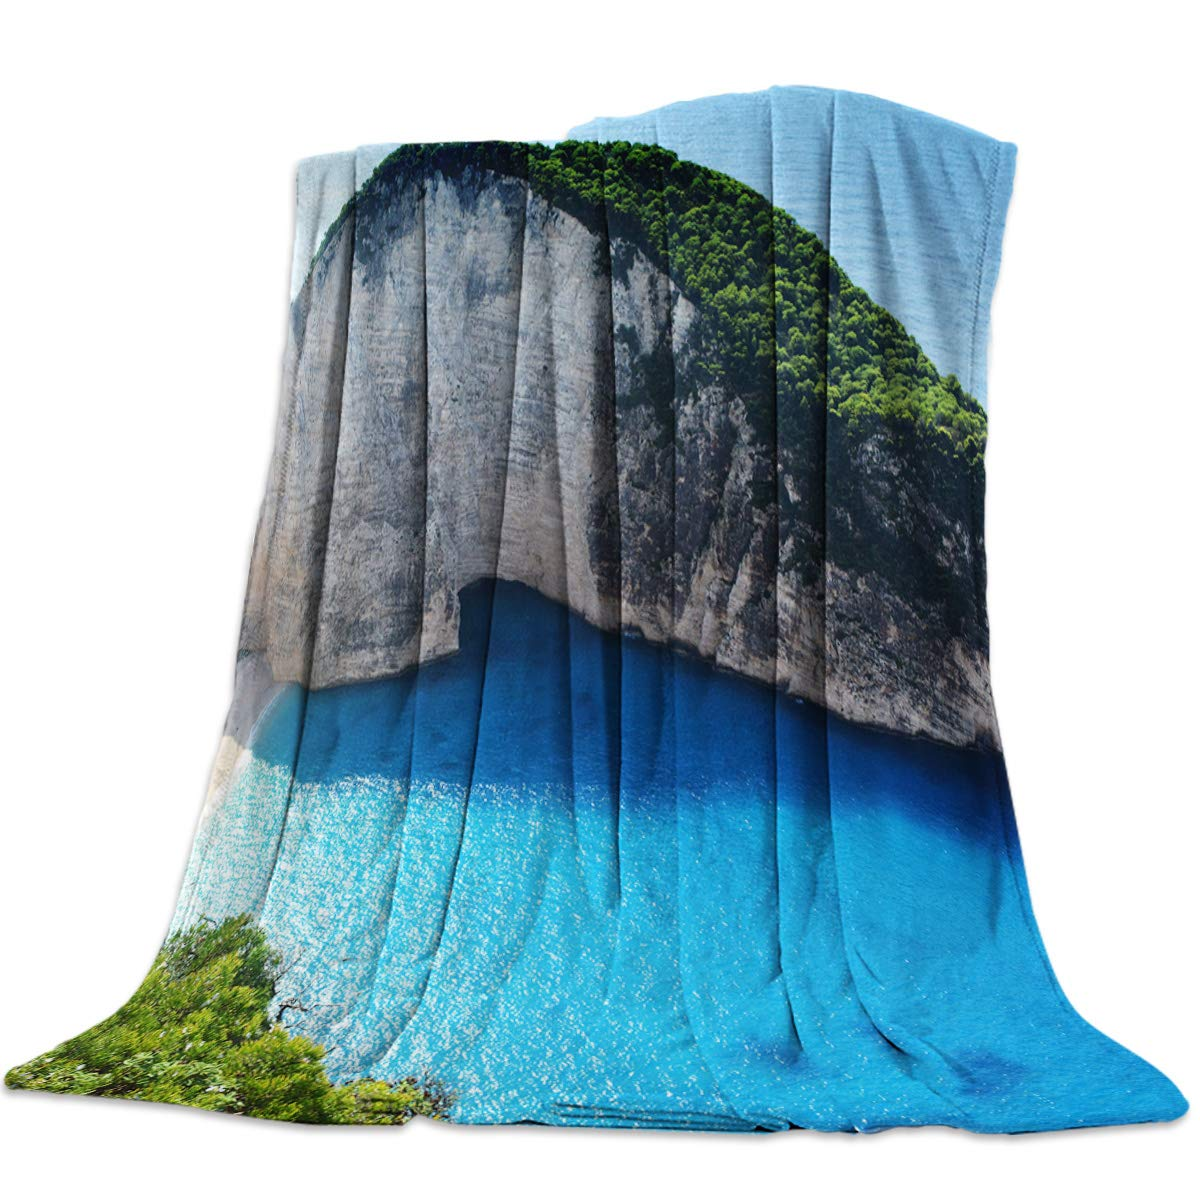 Landscape117yag3847 39x49inch=100x125cm YEHO Art Gallery 39x49 Inch Flannel Fleece Bed Blanket Soft Throw-Blankets for Girls Boys,Beautiful Landscape of Navagio,Cozy Lightweight Blankets for Bedroom Living Room Sofa Couch